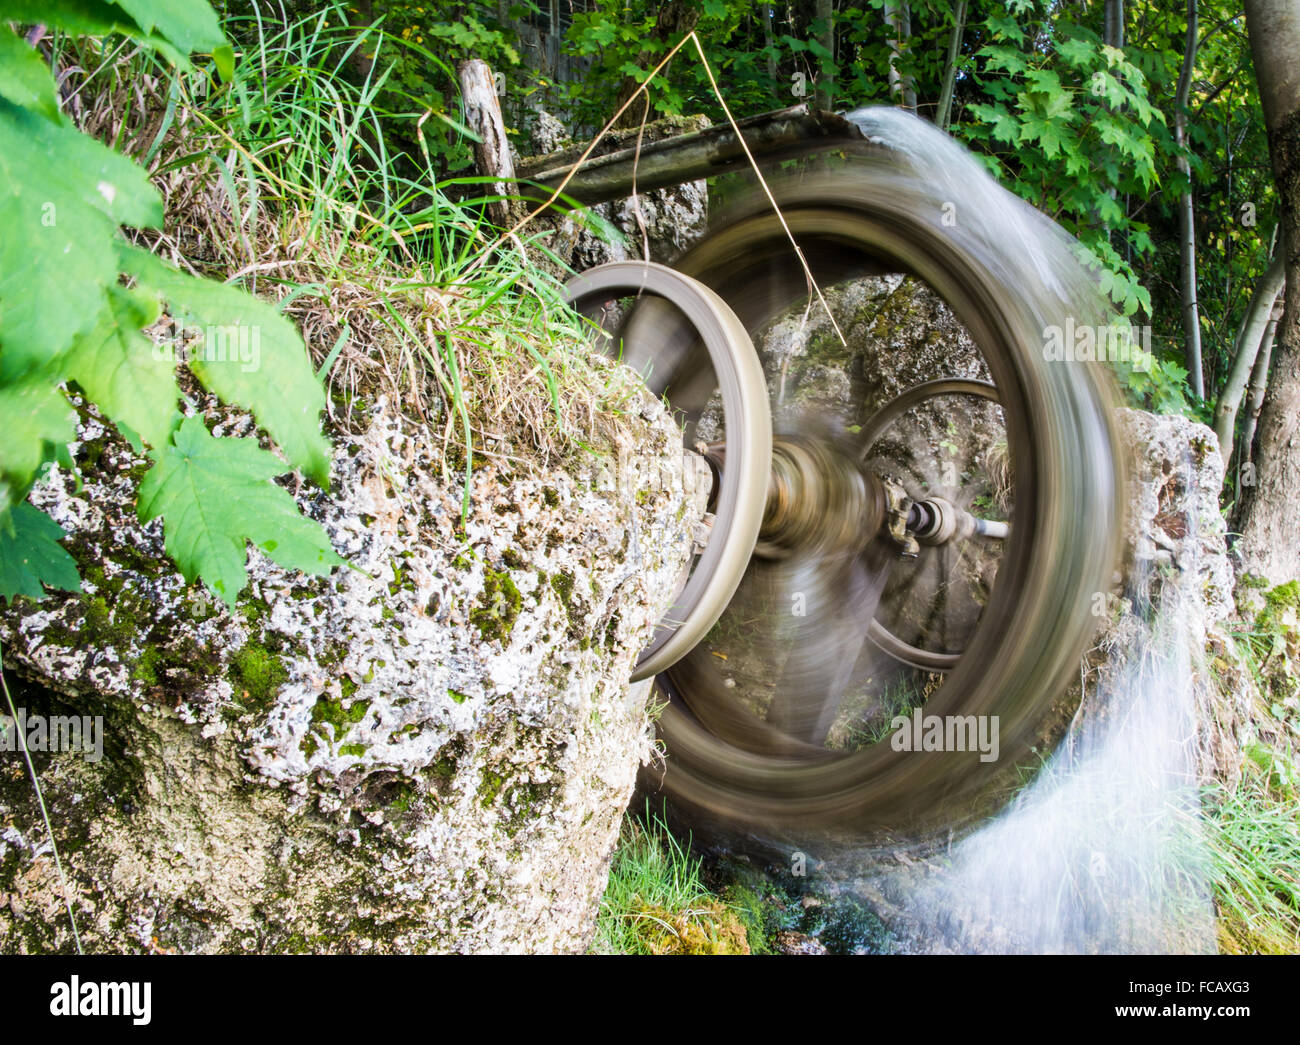 Blurred motion of a vintage spinning water wheel - Stock Image